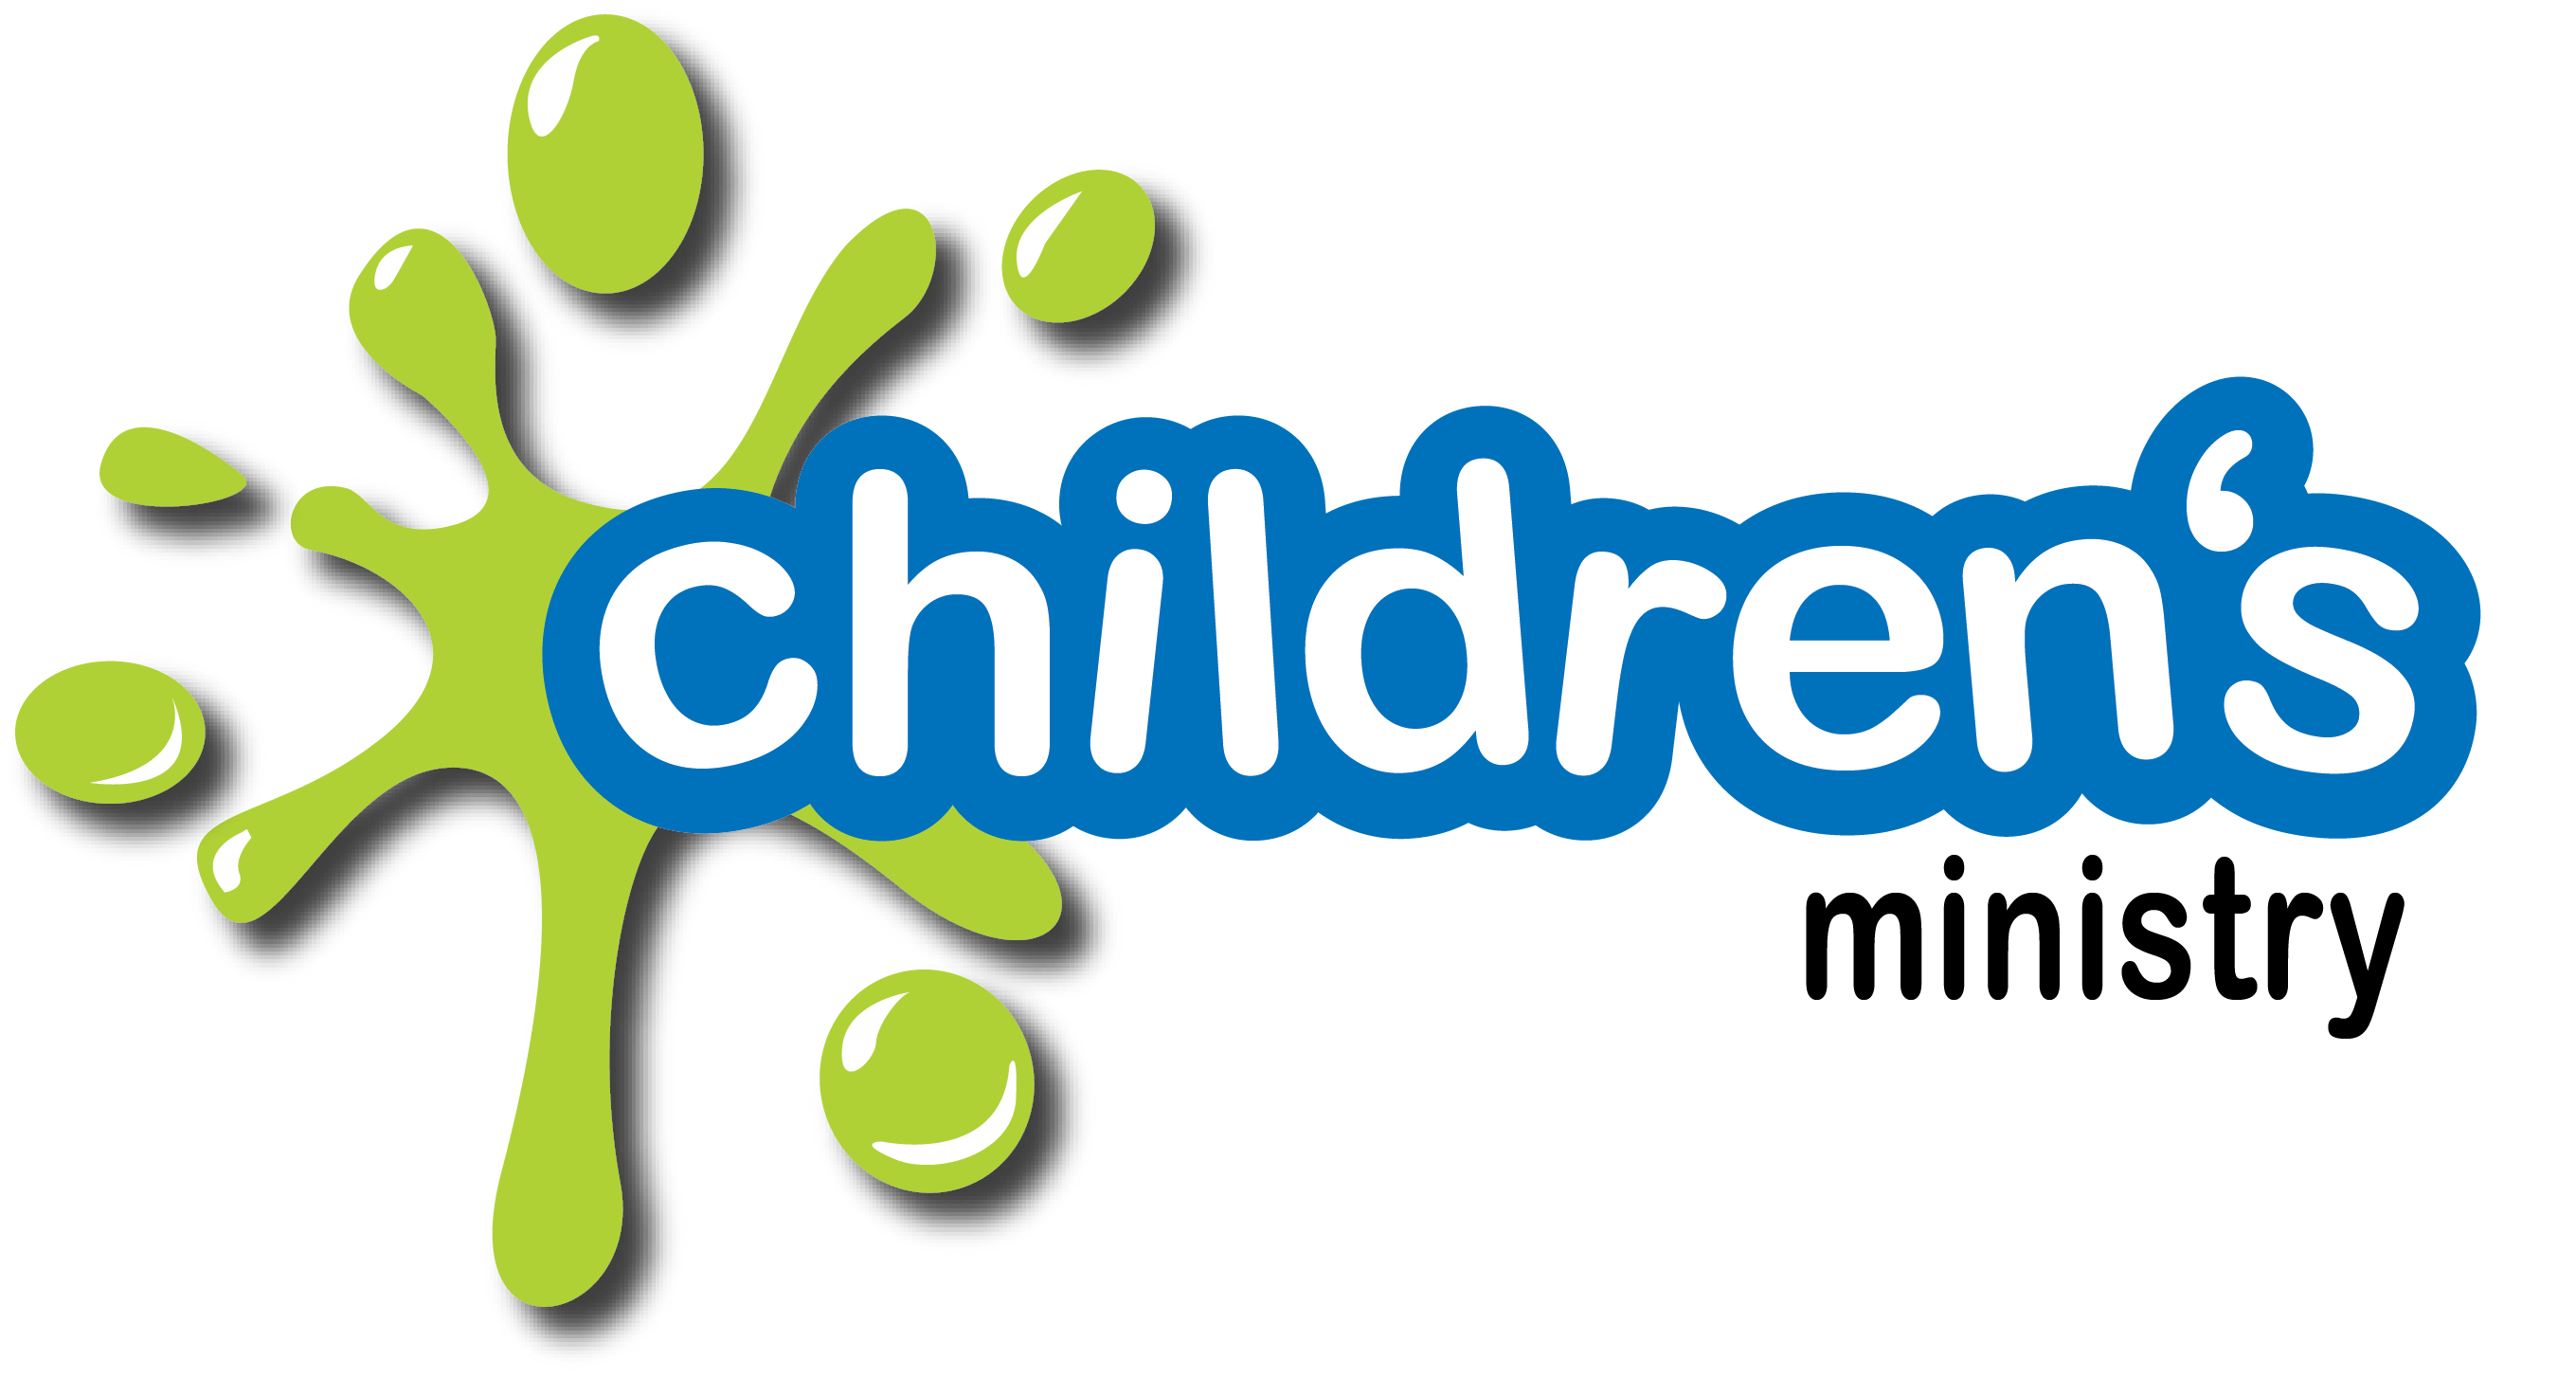 The Children's Place Verified account @childrensplace The Children's Place is your one-stop shop for quality apparel at unmatched value for kids in sizes newborn to Account Status: Verified.